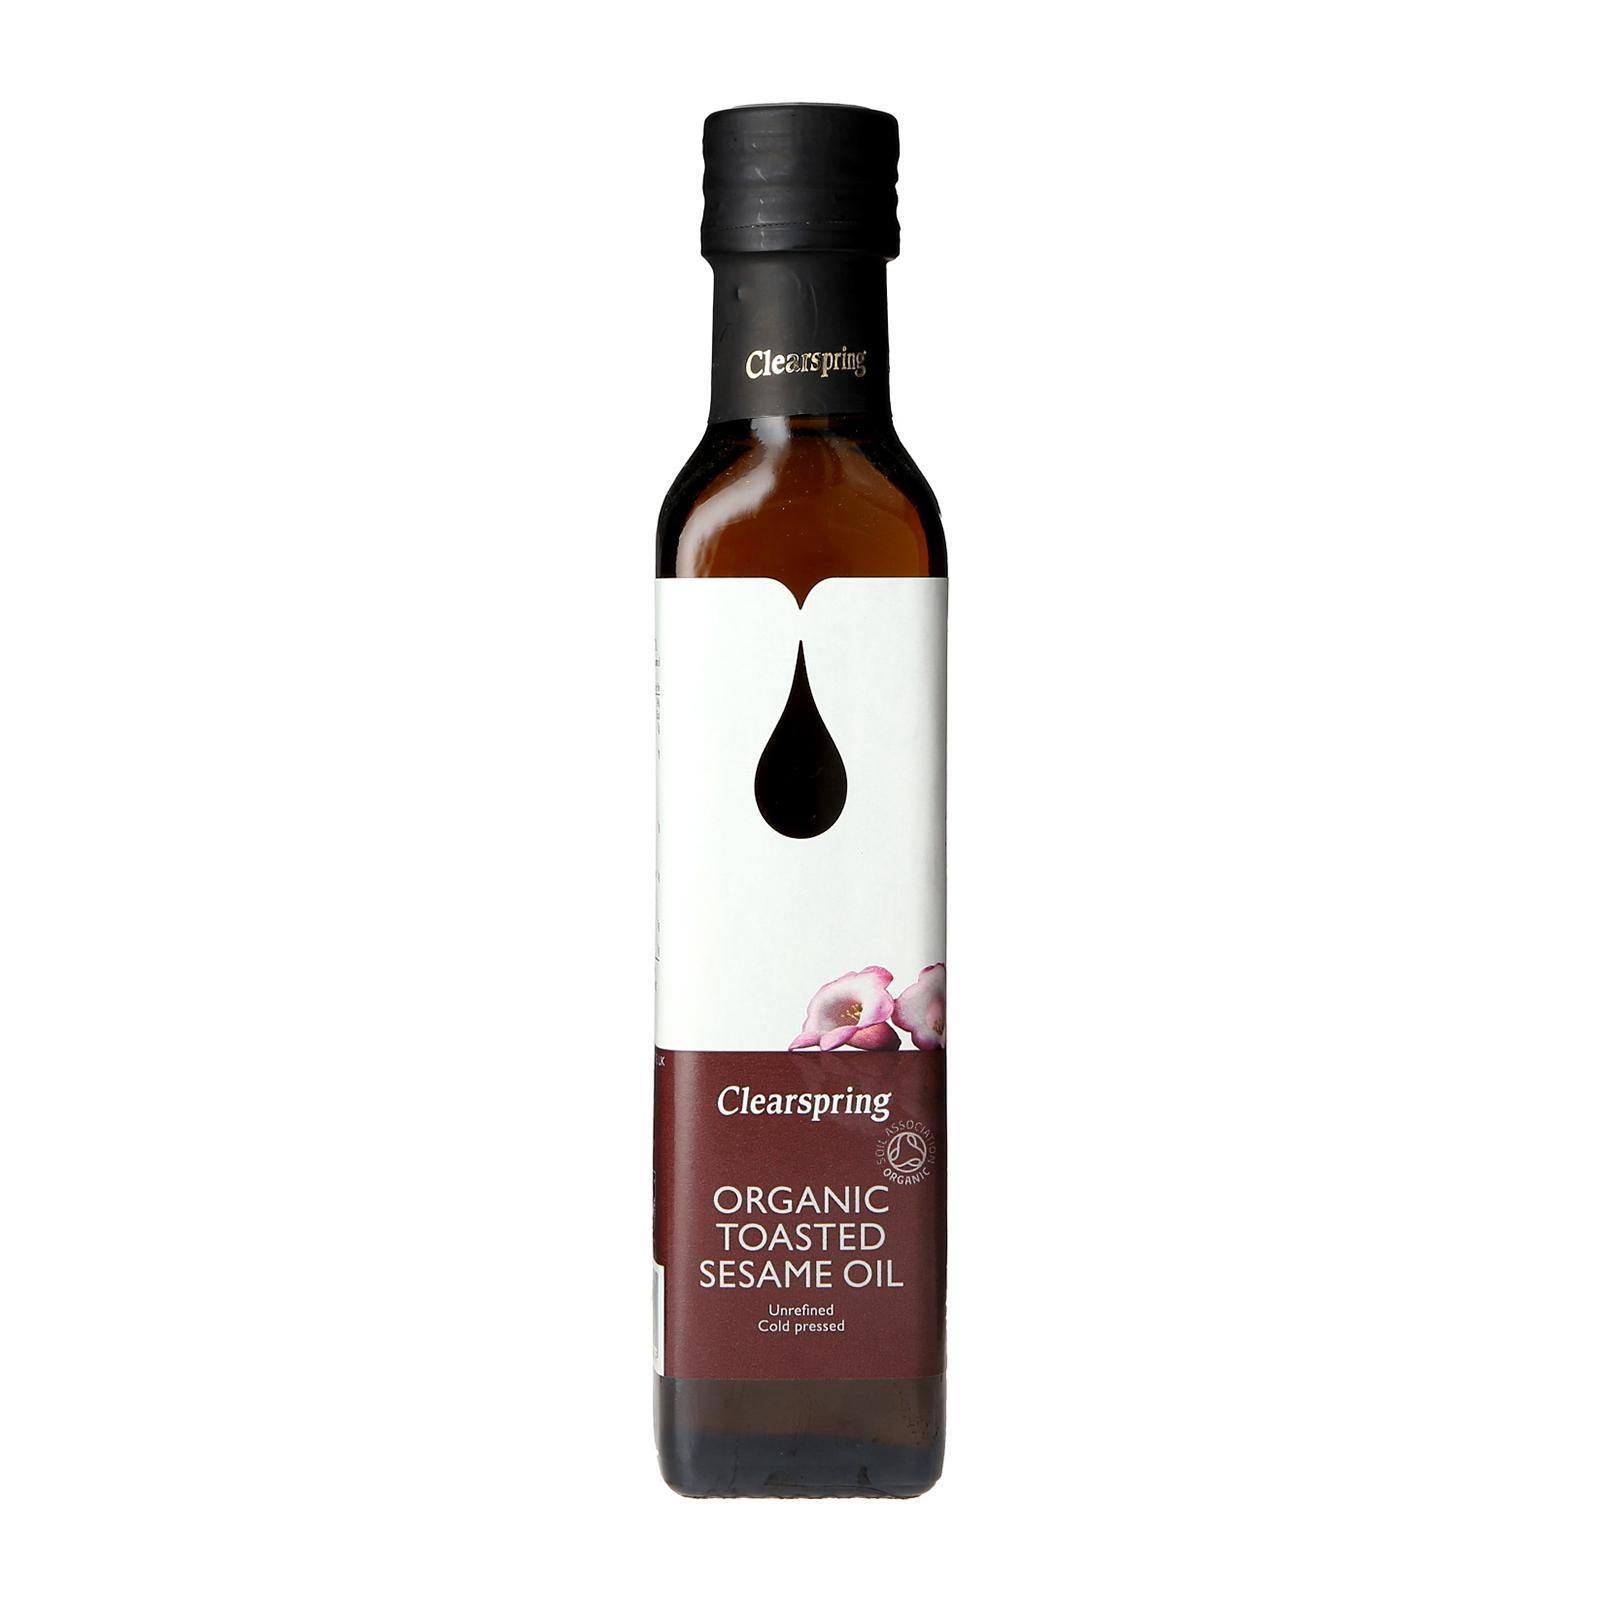 Clearspring Organic Toasted Sesame Oil - By Wholesome Harvest By Redmart.